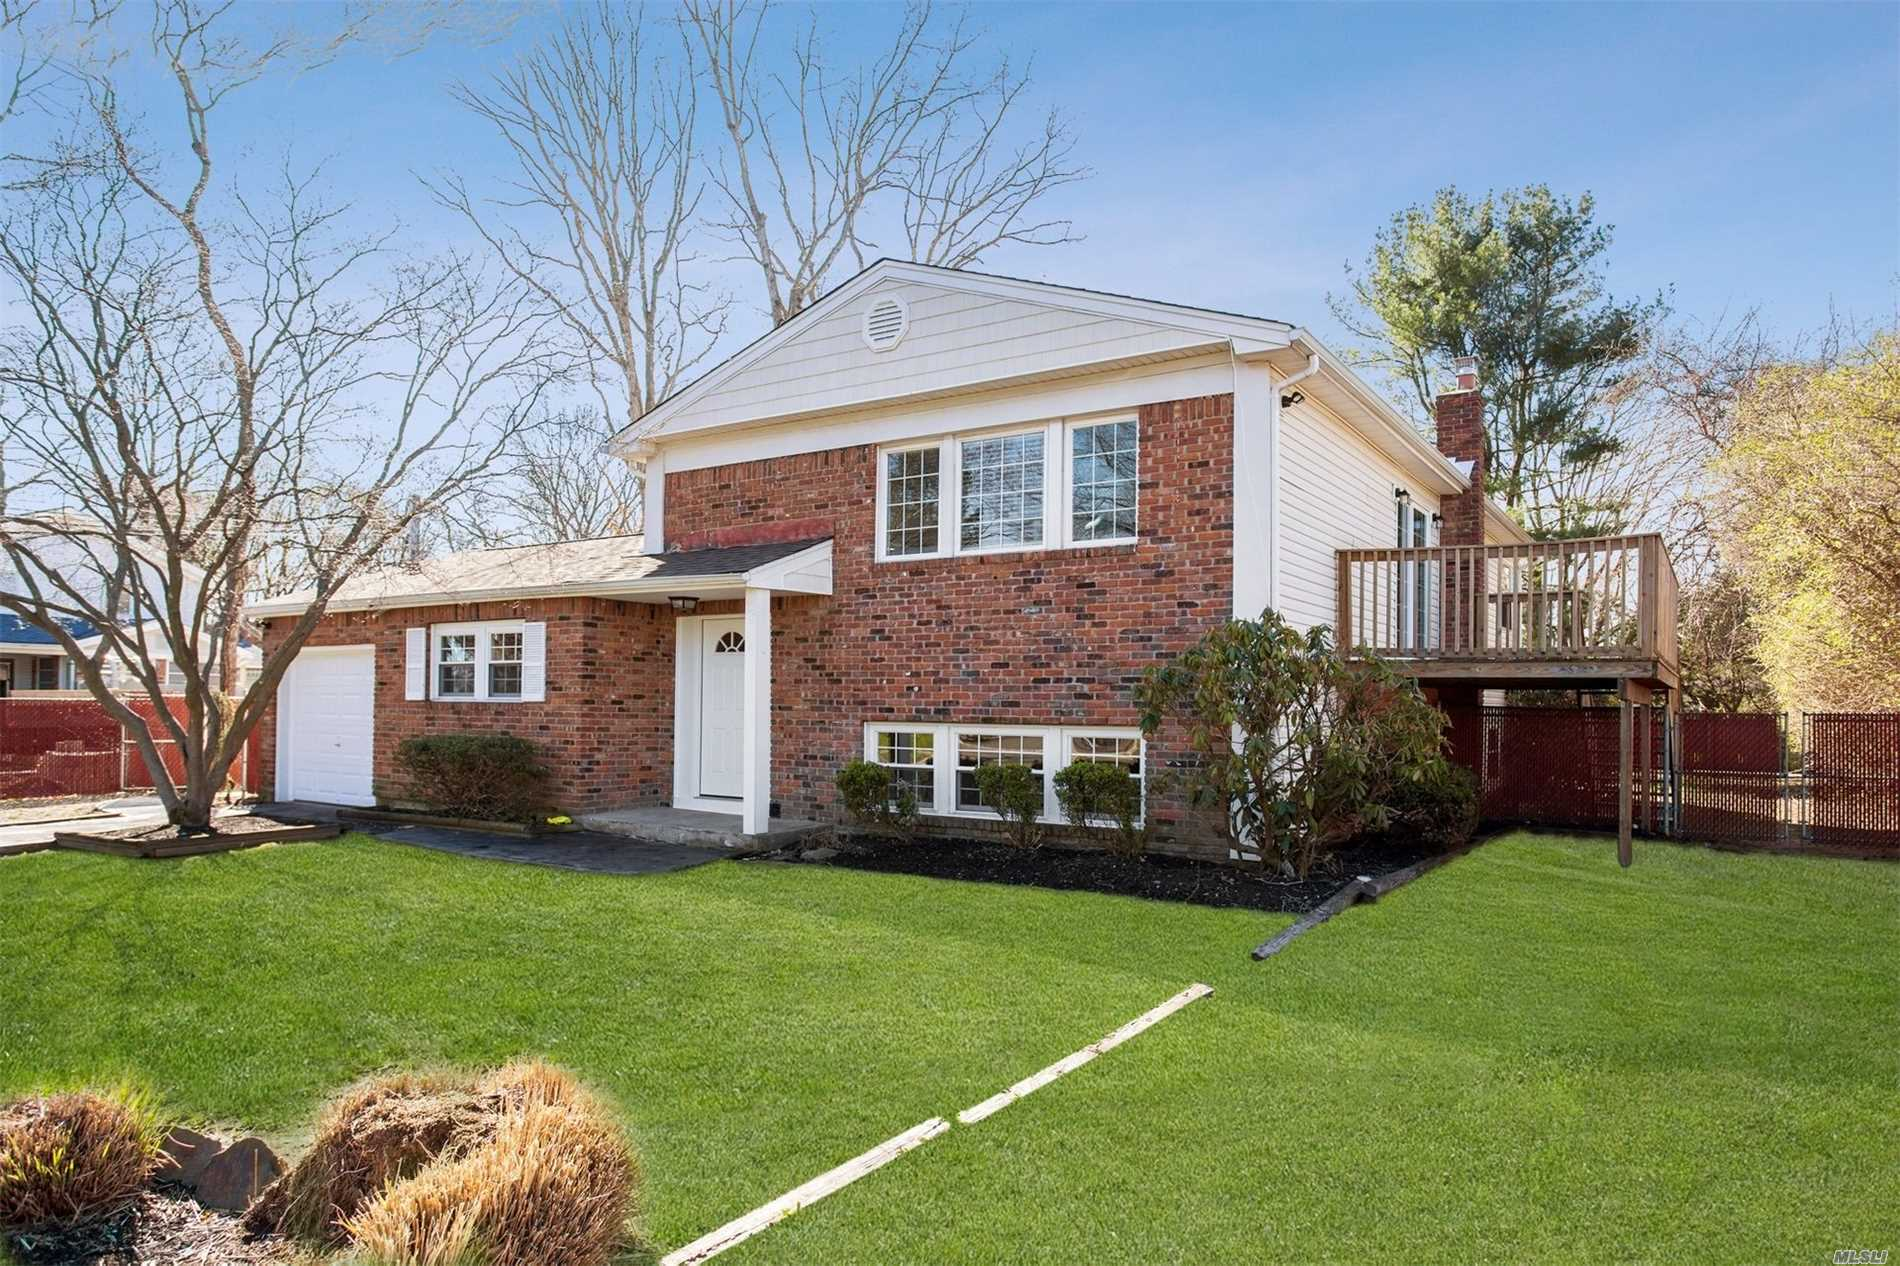 Photo of home for sale at 210 Jericho St, East Islip NY